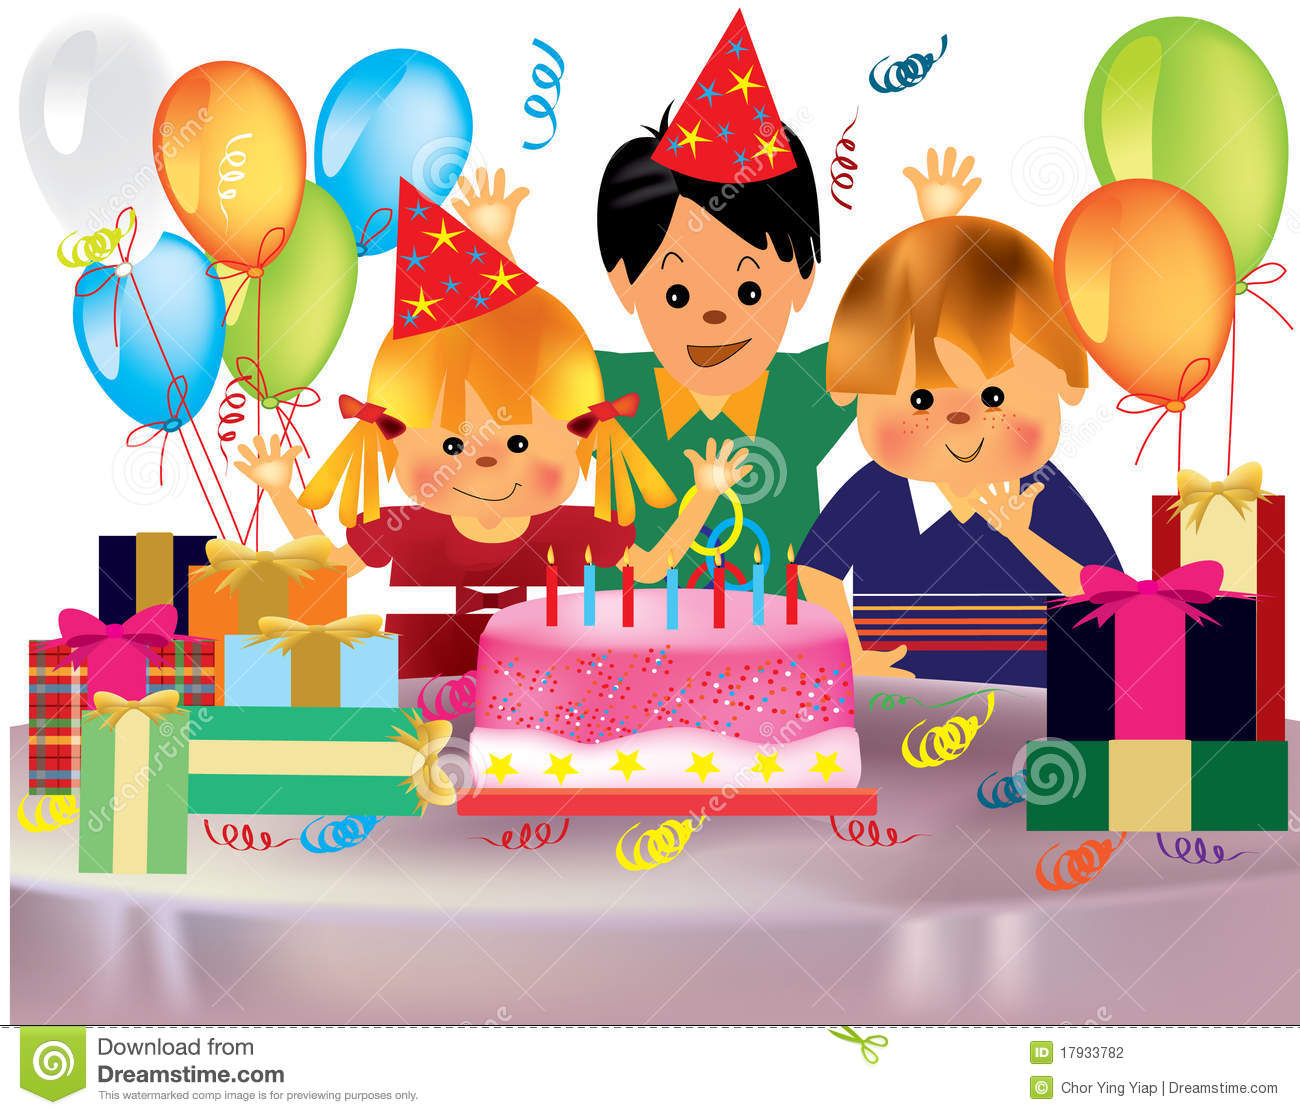 Birthday party clip art images - ClipartFest